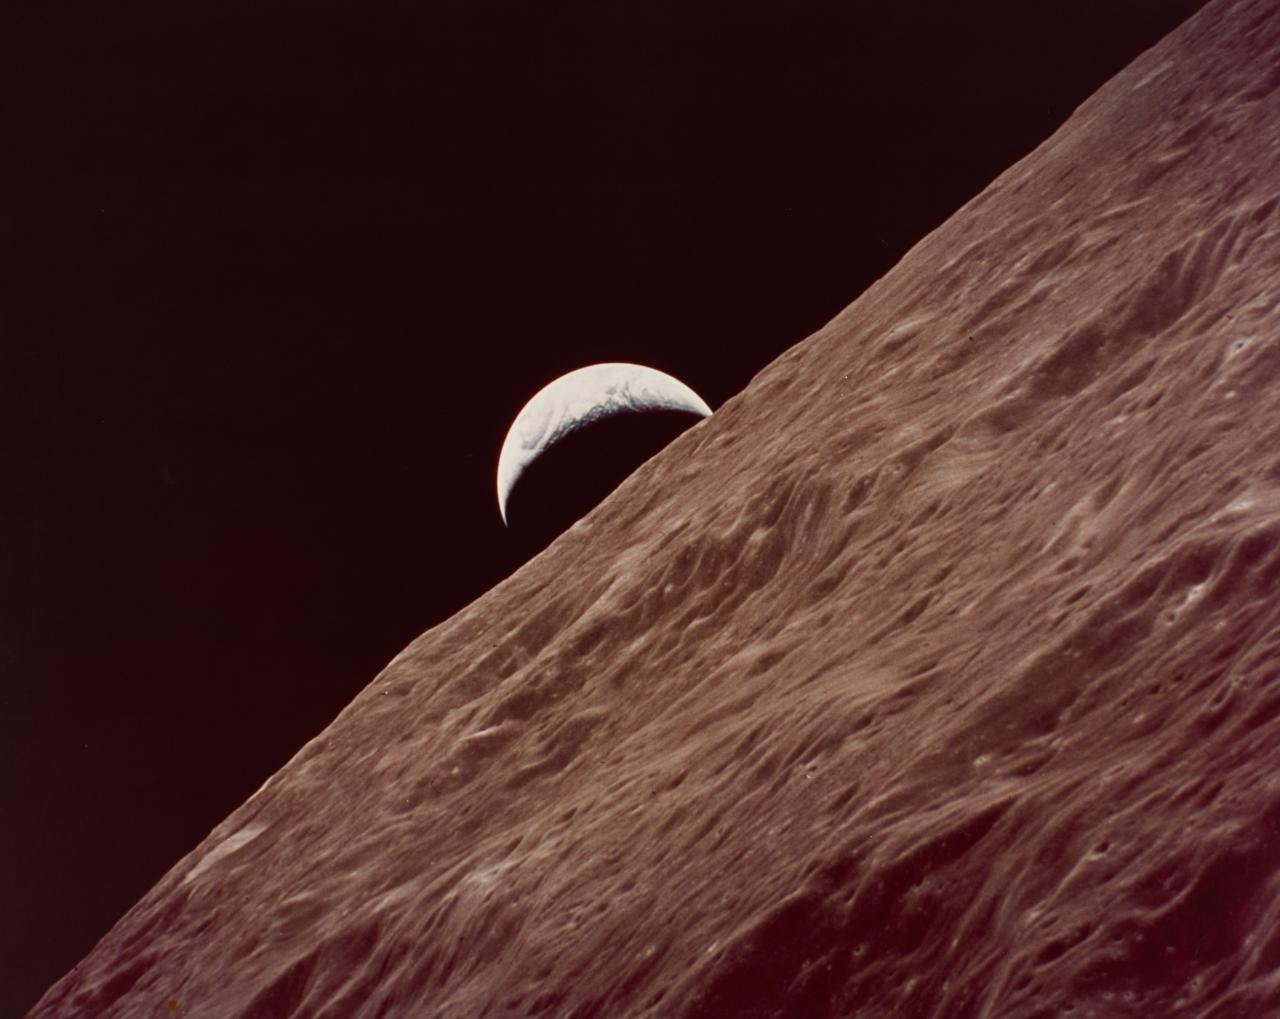 Crescent Earth rises over lunar far side, seen from Apollo 17